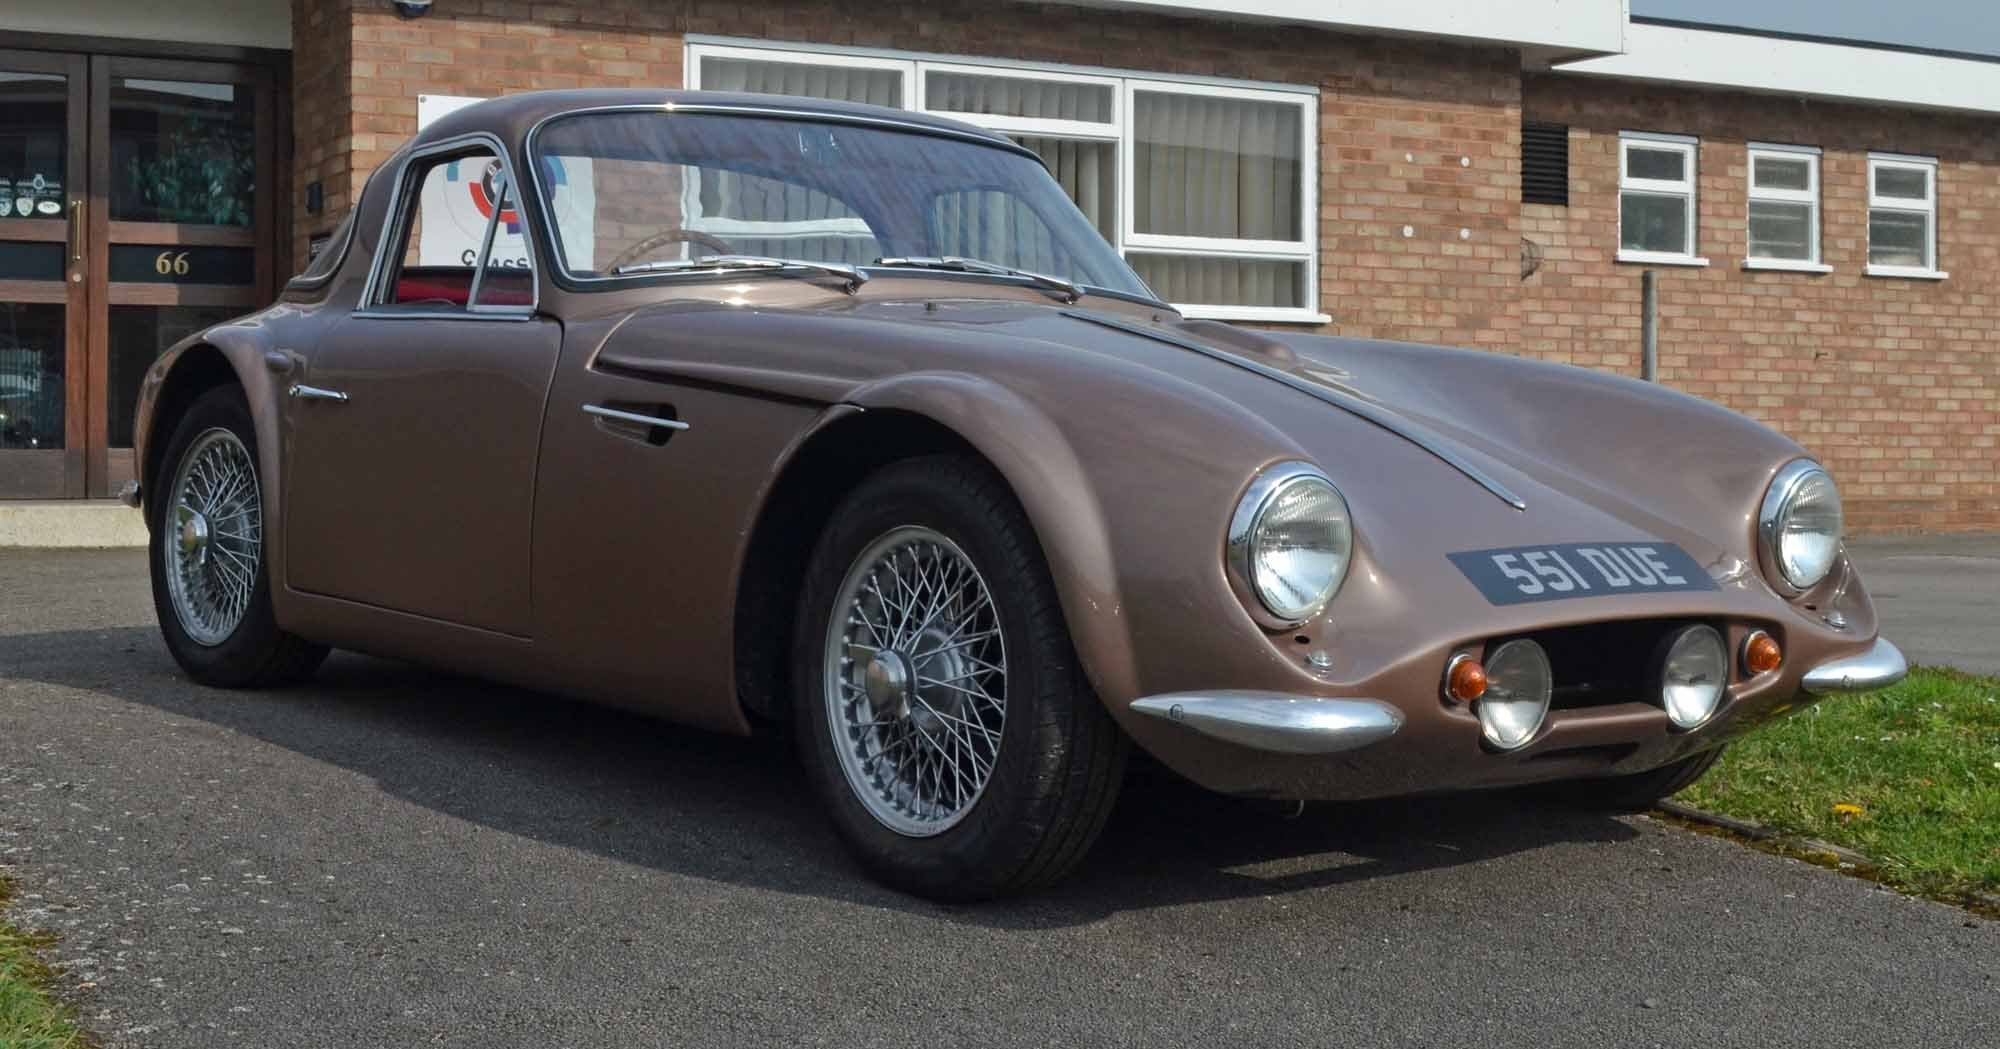 1962 TVR Grantura MkIII - Hardly used since restoration -  For Sale (picture 2 of 6)